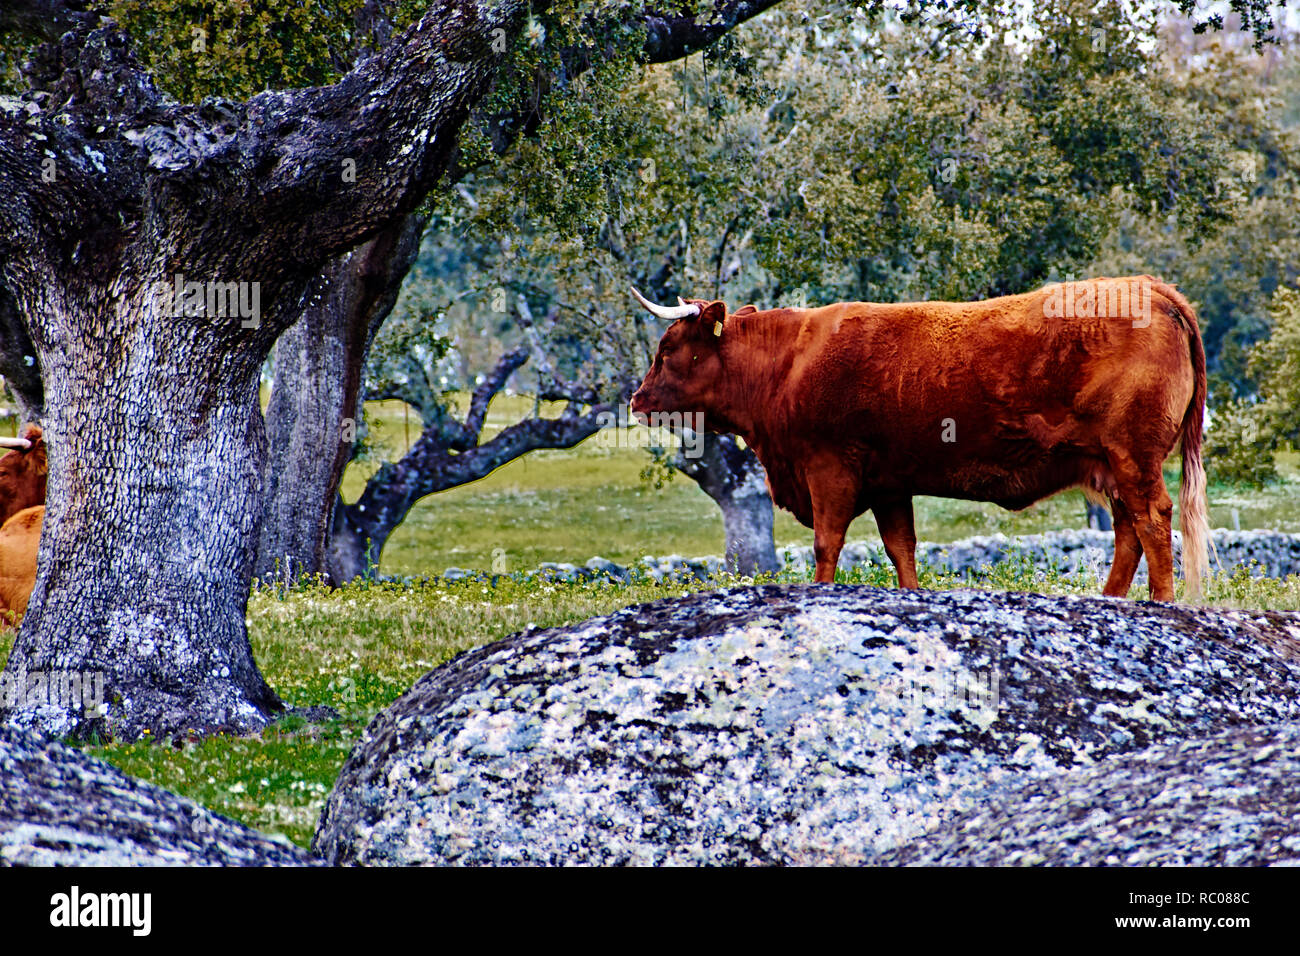 Cow grazing in a lost place in the mountain - Stock Image